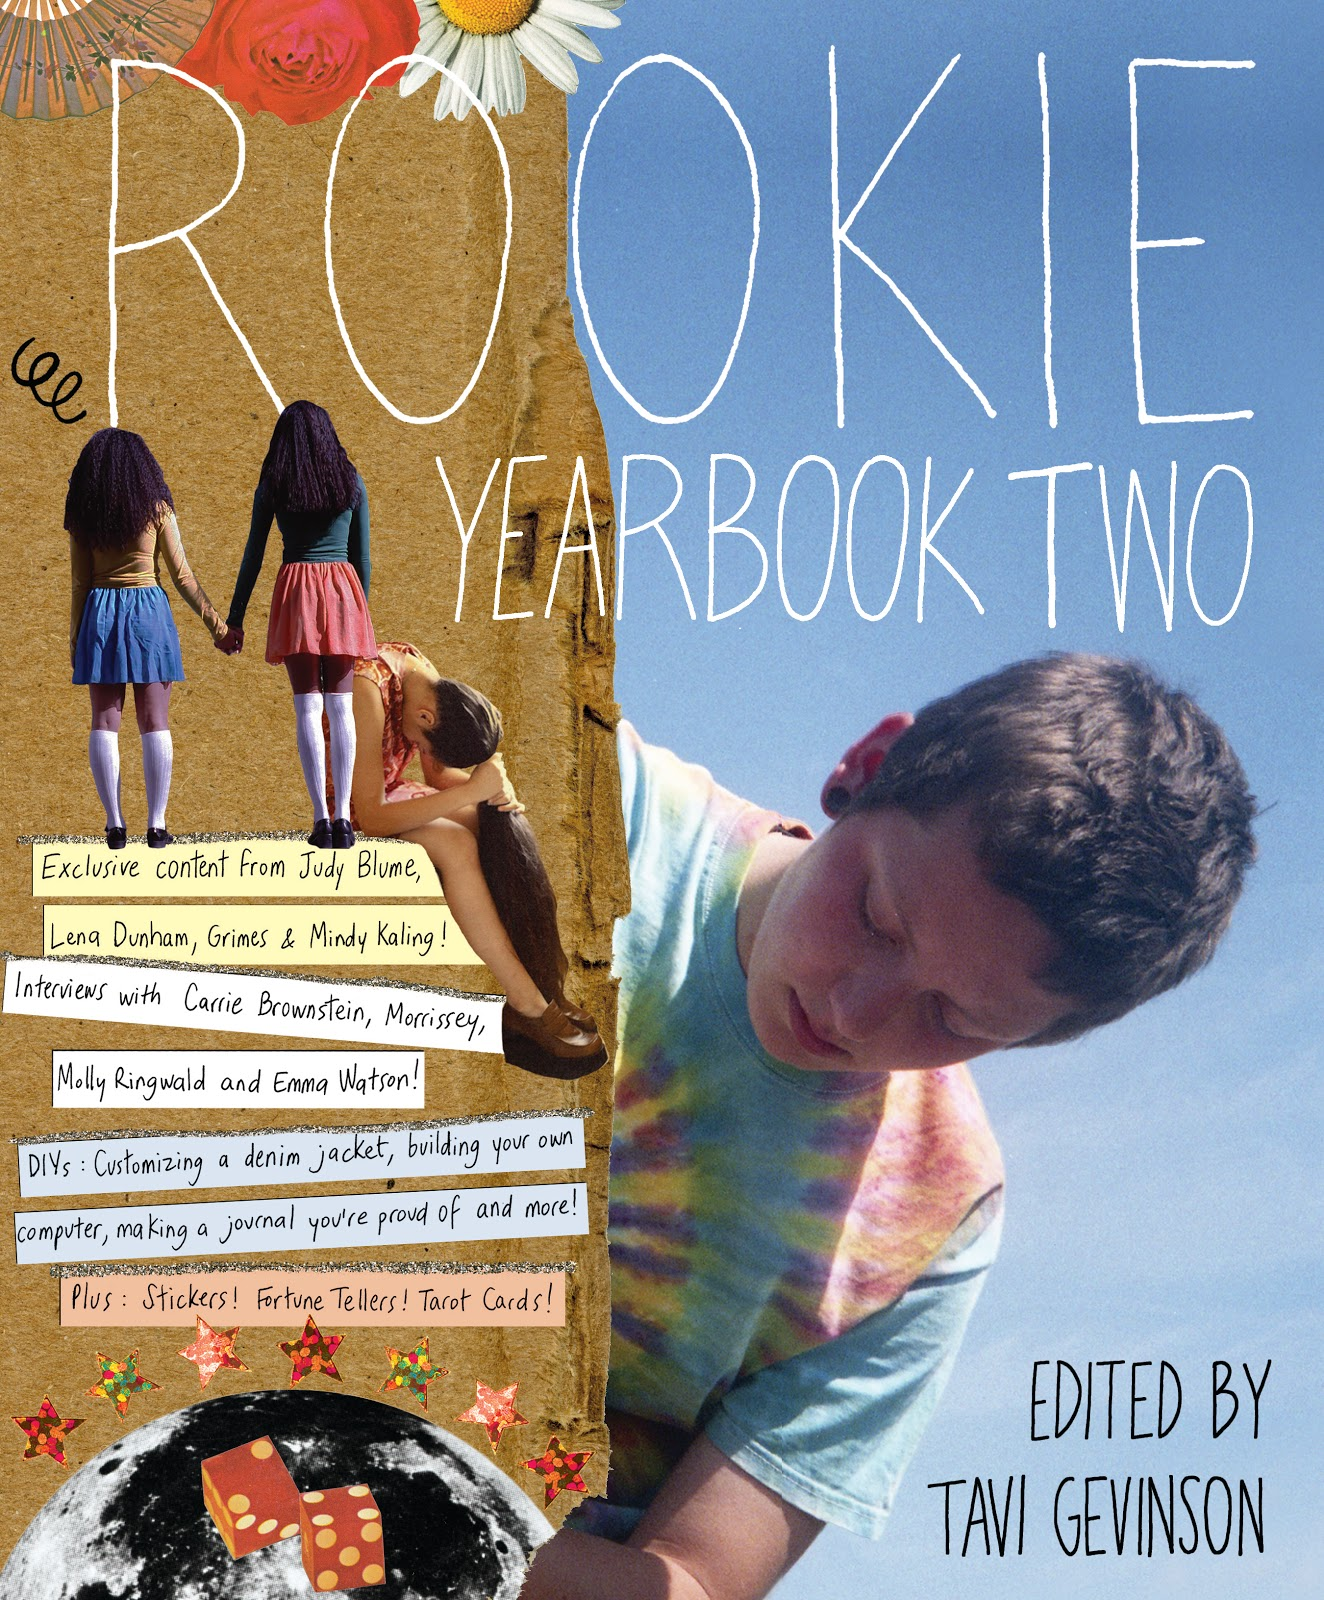 Rookie Yearbook Two: Gevinson And Pals' Wonderful